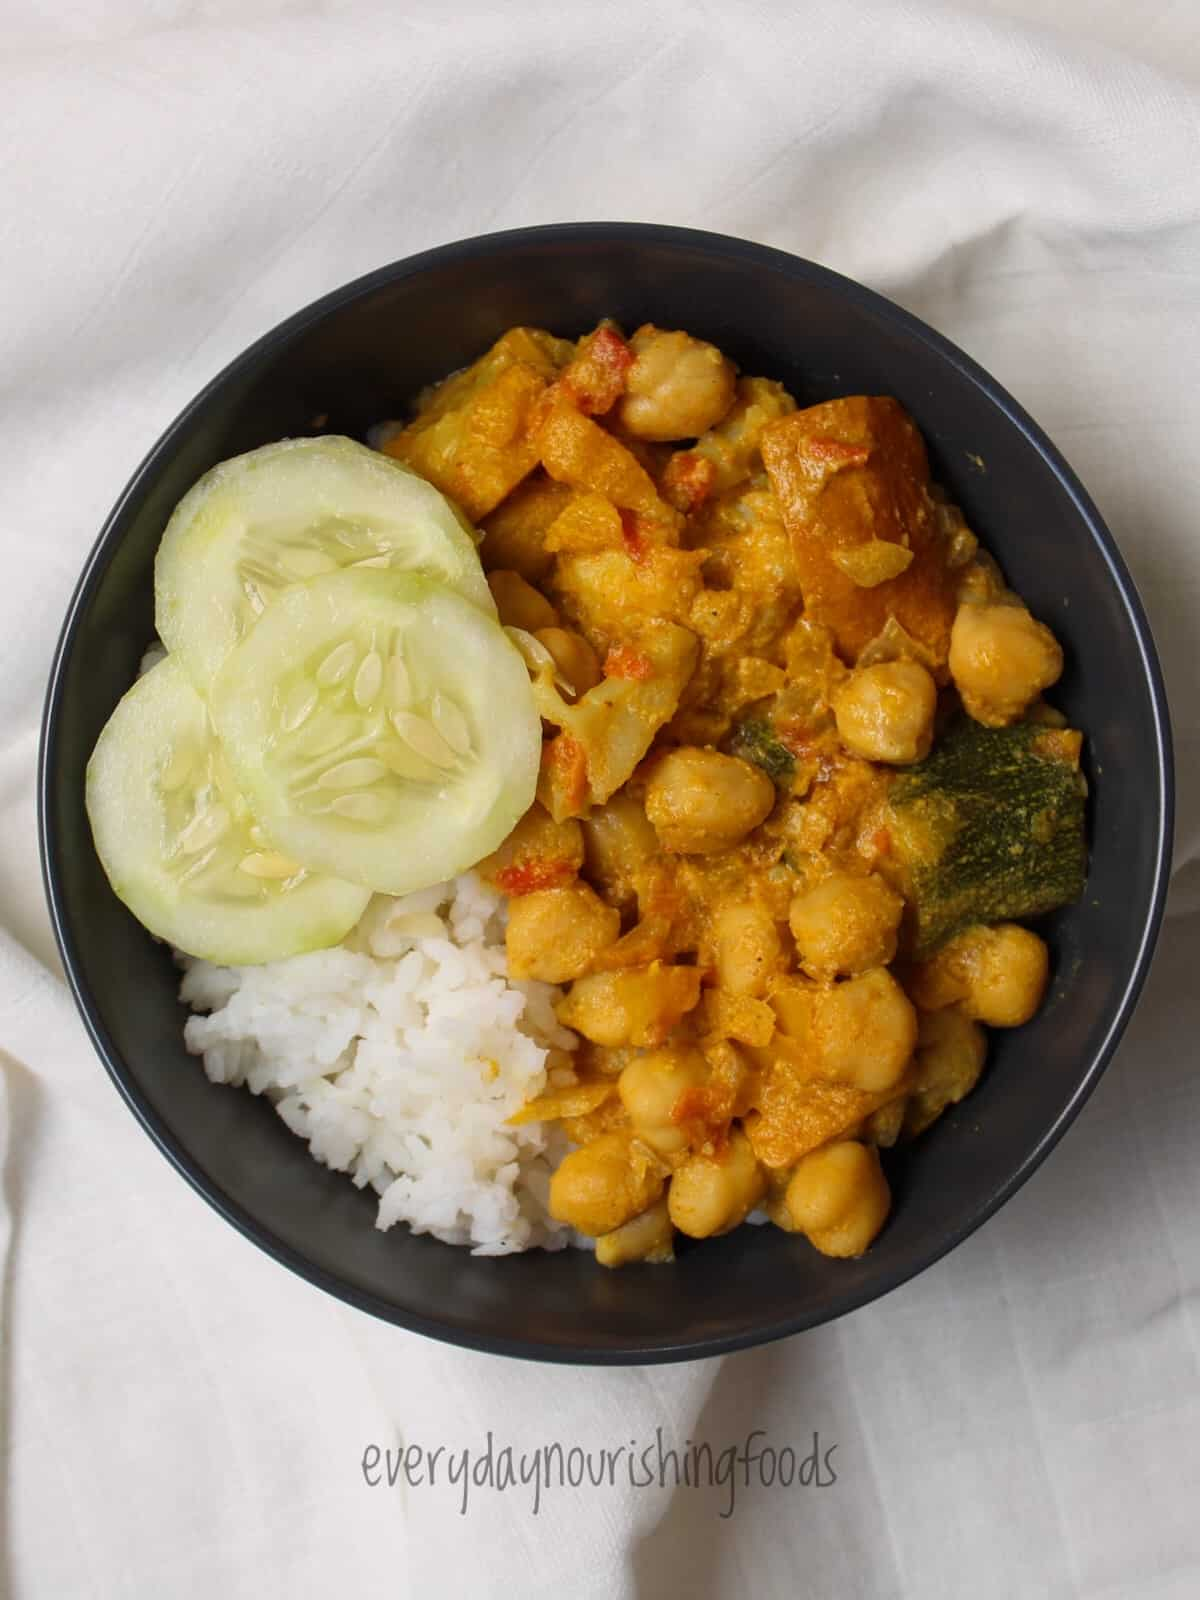 vegetable curry with coconut milk and chickpeas in a bowl